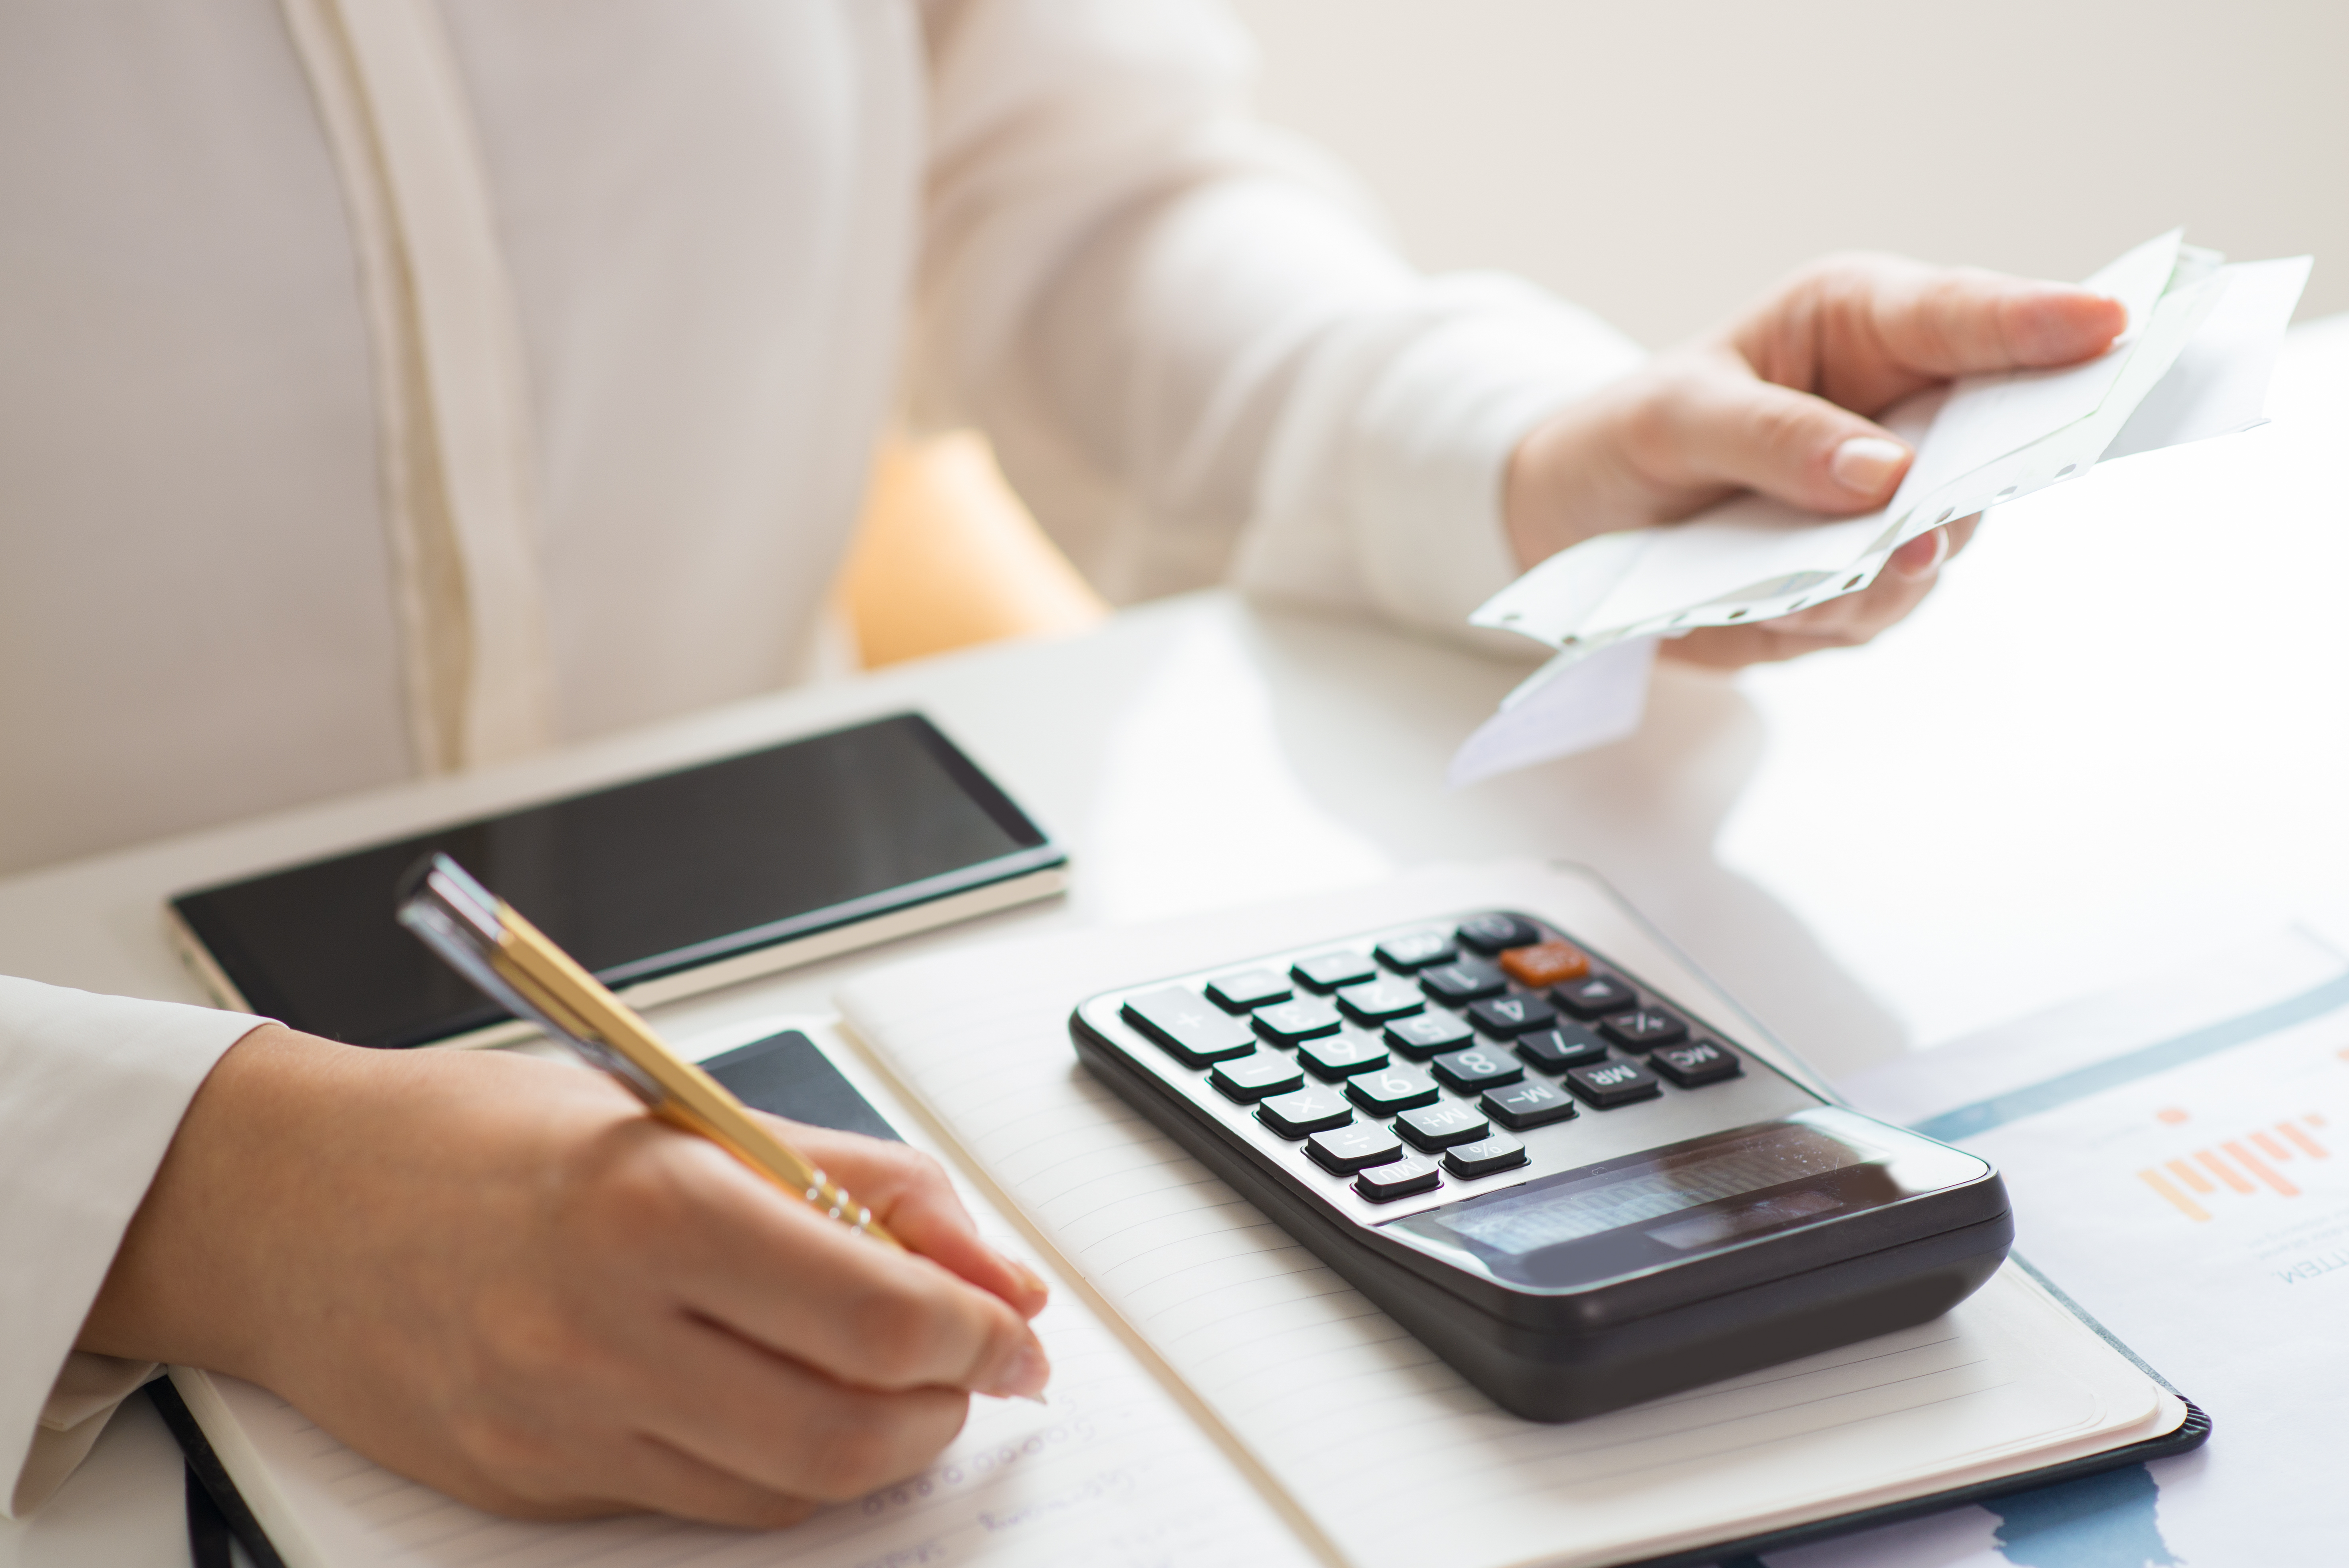 Closeup of person holding bills and calculating them.